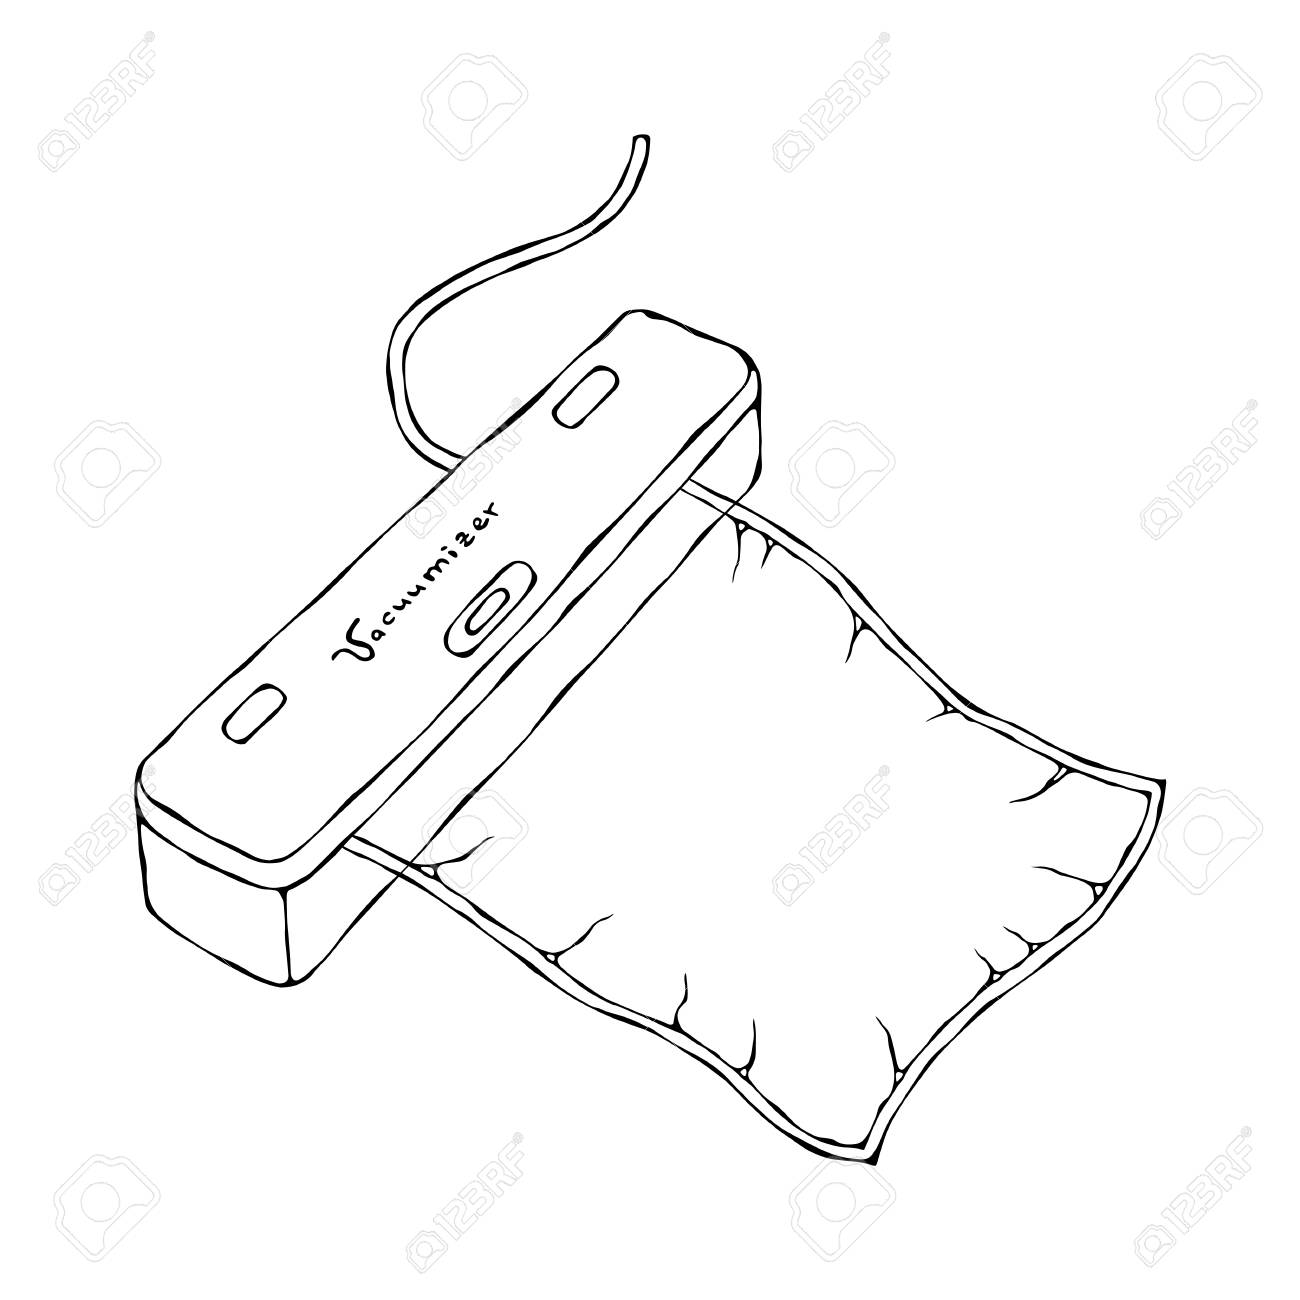 Vacuumizer Food Sealer with Vacuum Bag. What is Sous-Vide. Slow Cooking Technology. Perfect Food. Chief Cuisine Collection. EPS10 Vector. Hand Drawn Doodle Style Realistic Illustration - 126910593